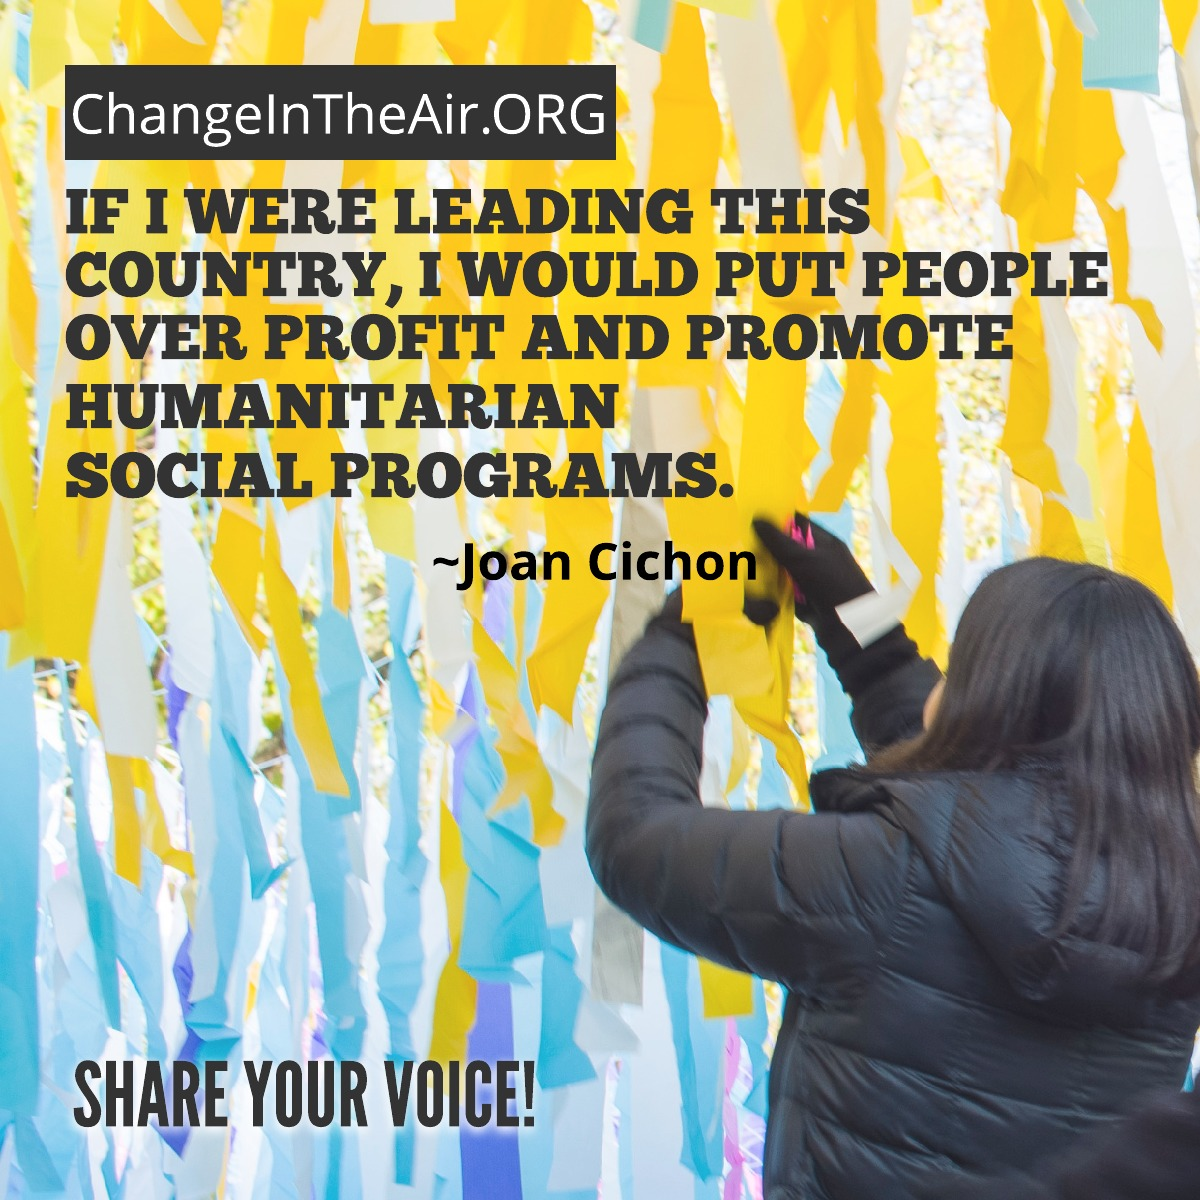 Change in the Air message. If I were leading this county, I would put people over profit and promote humanitarian social programs.